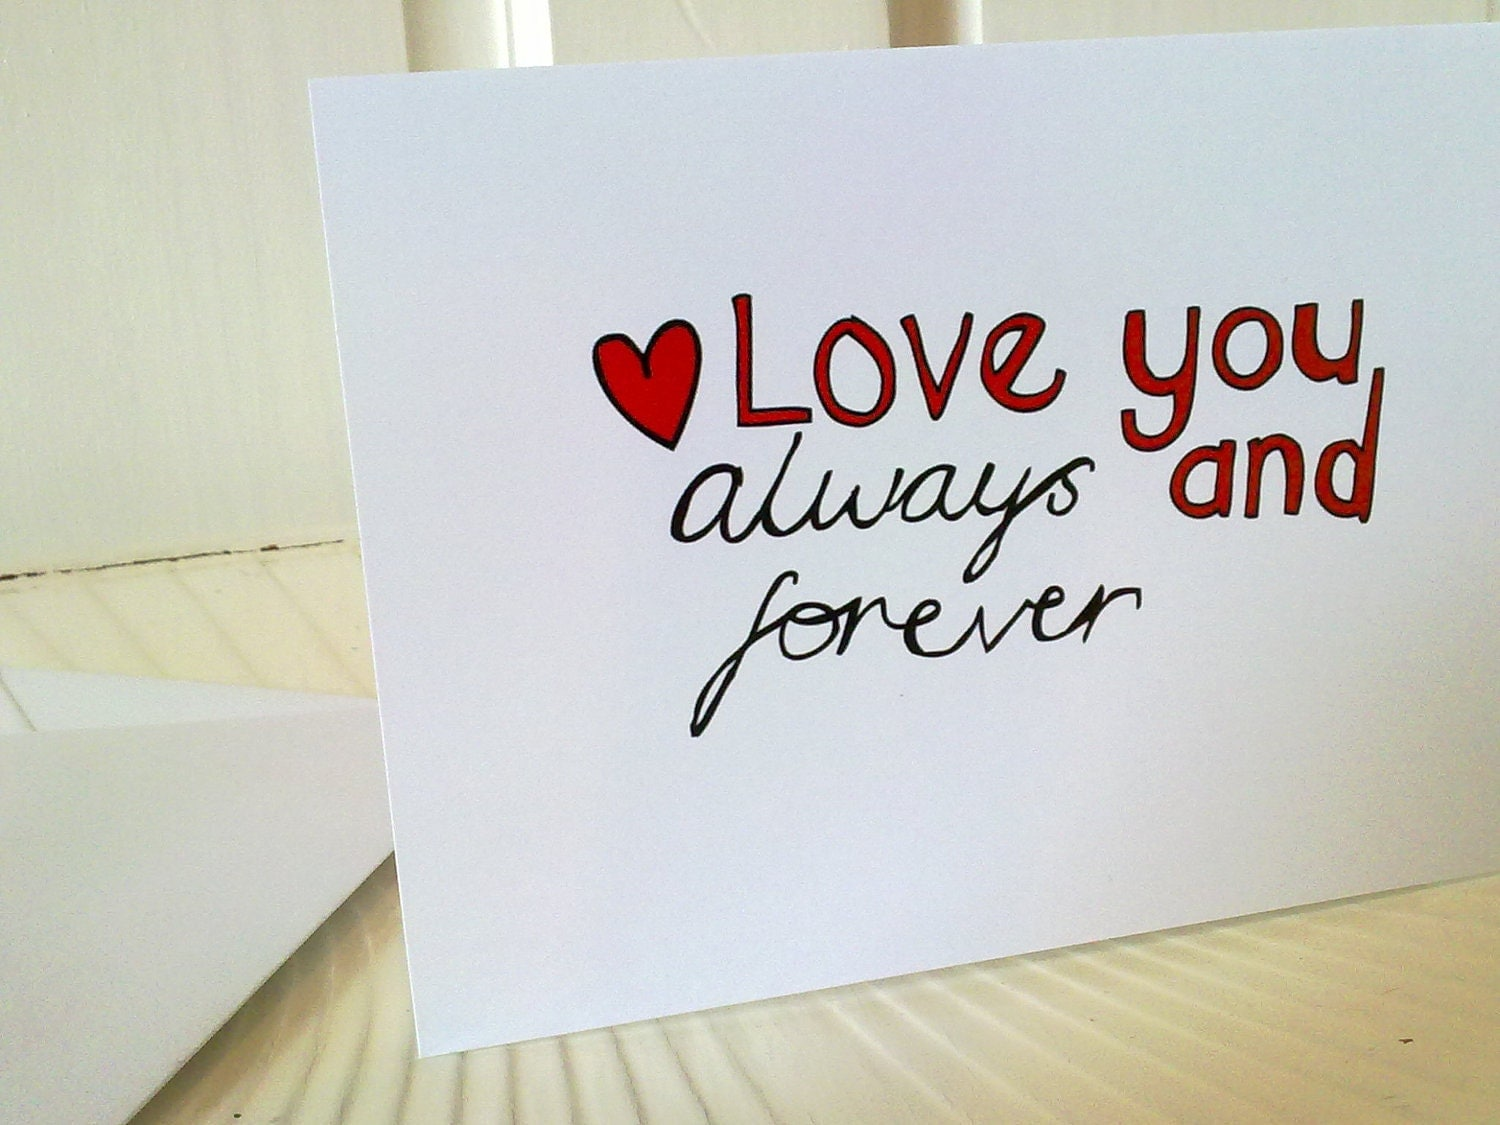 Wallpaper Love U Forever : I Love You Forever And Always Images Wallpaper Images